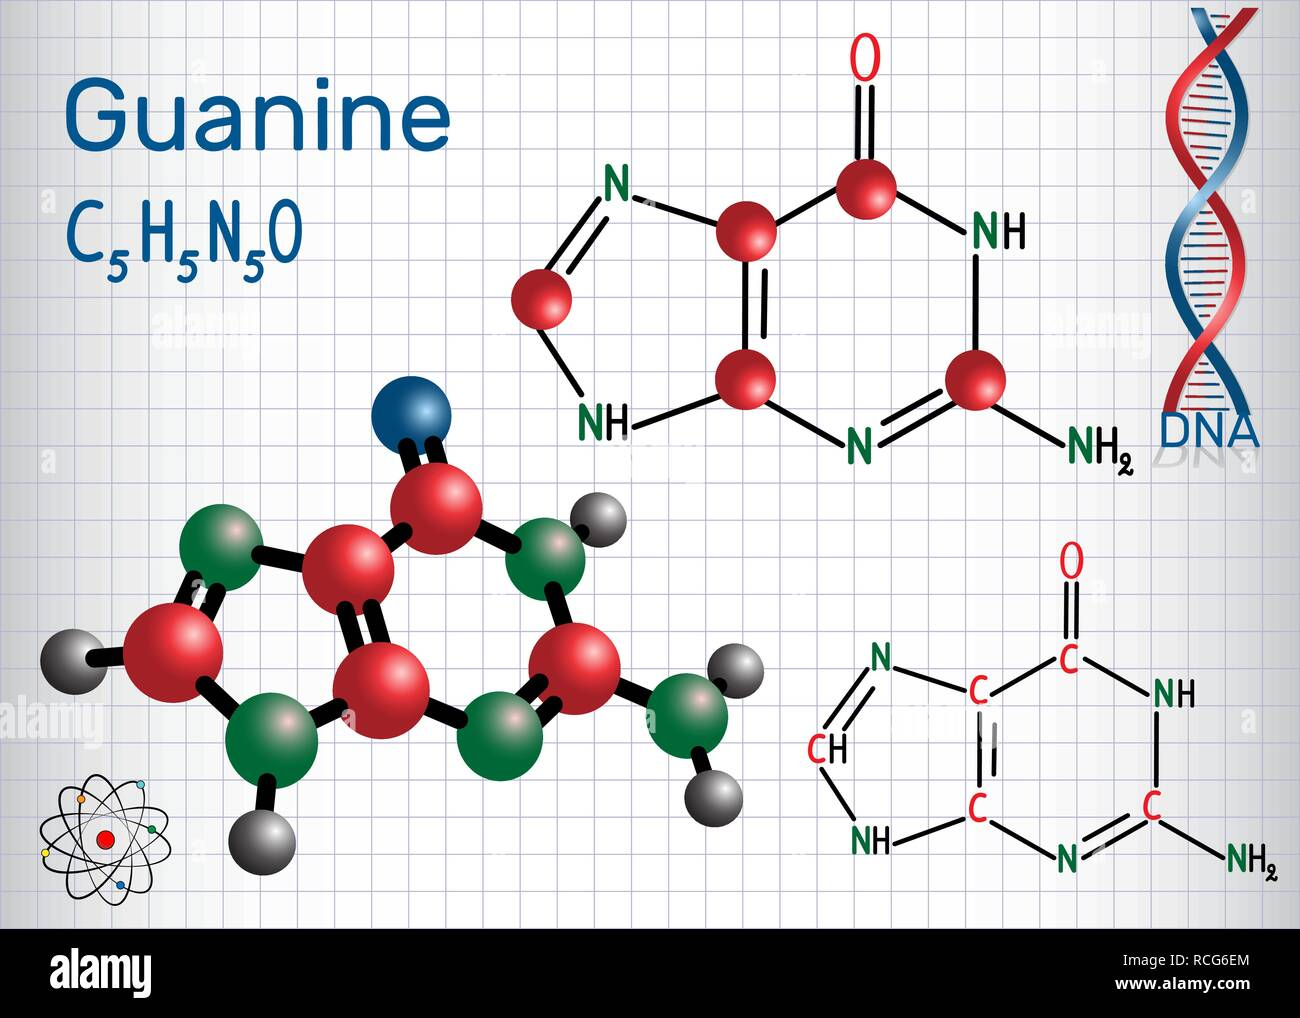 Guanine (G, Gua) - purine nucleobase, fundamental unit of the genetic code in DNA and RNA. Structural chemical formula and molecule model. Sheet of pa - Stock Image